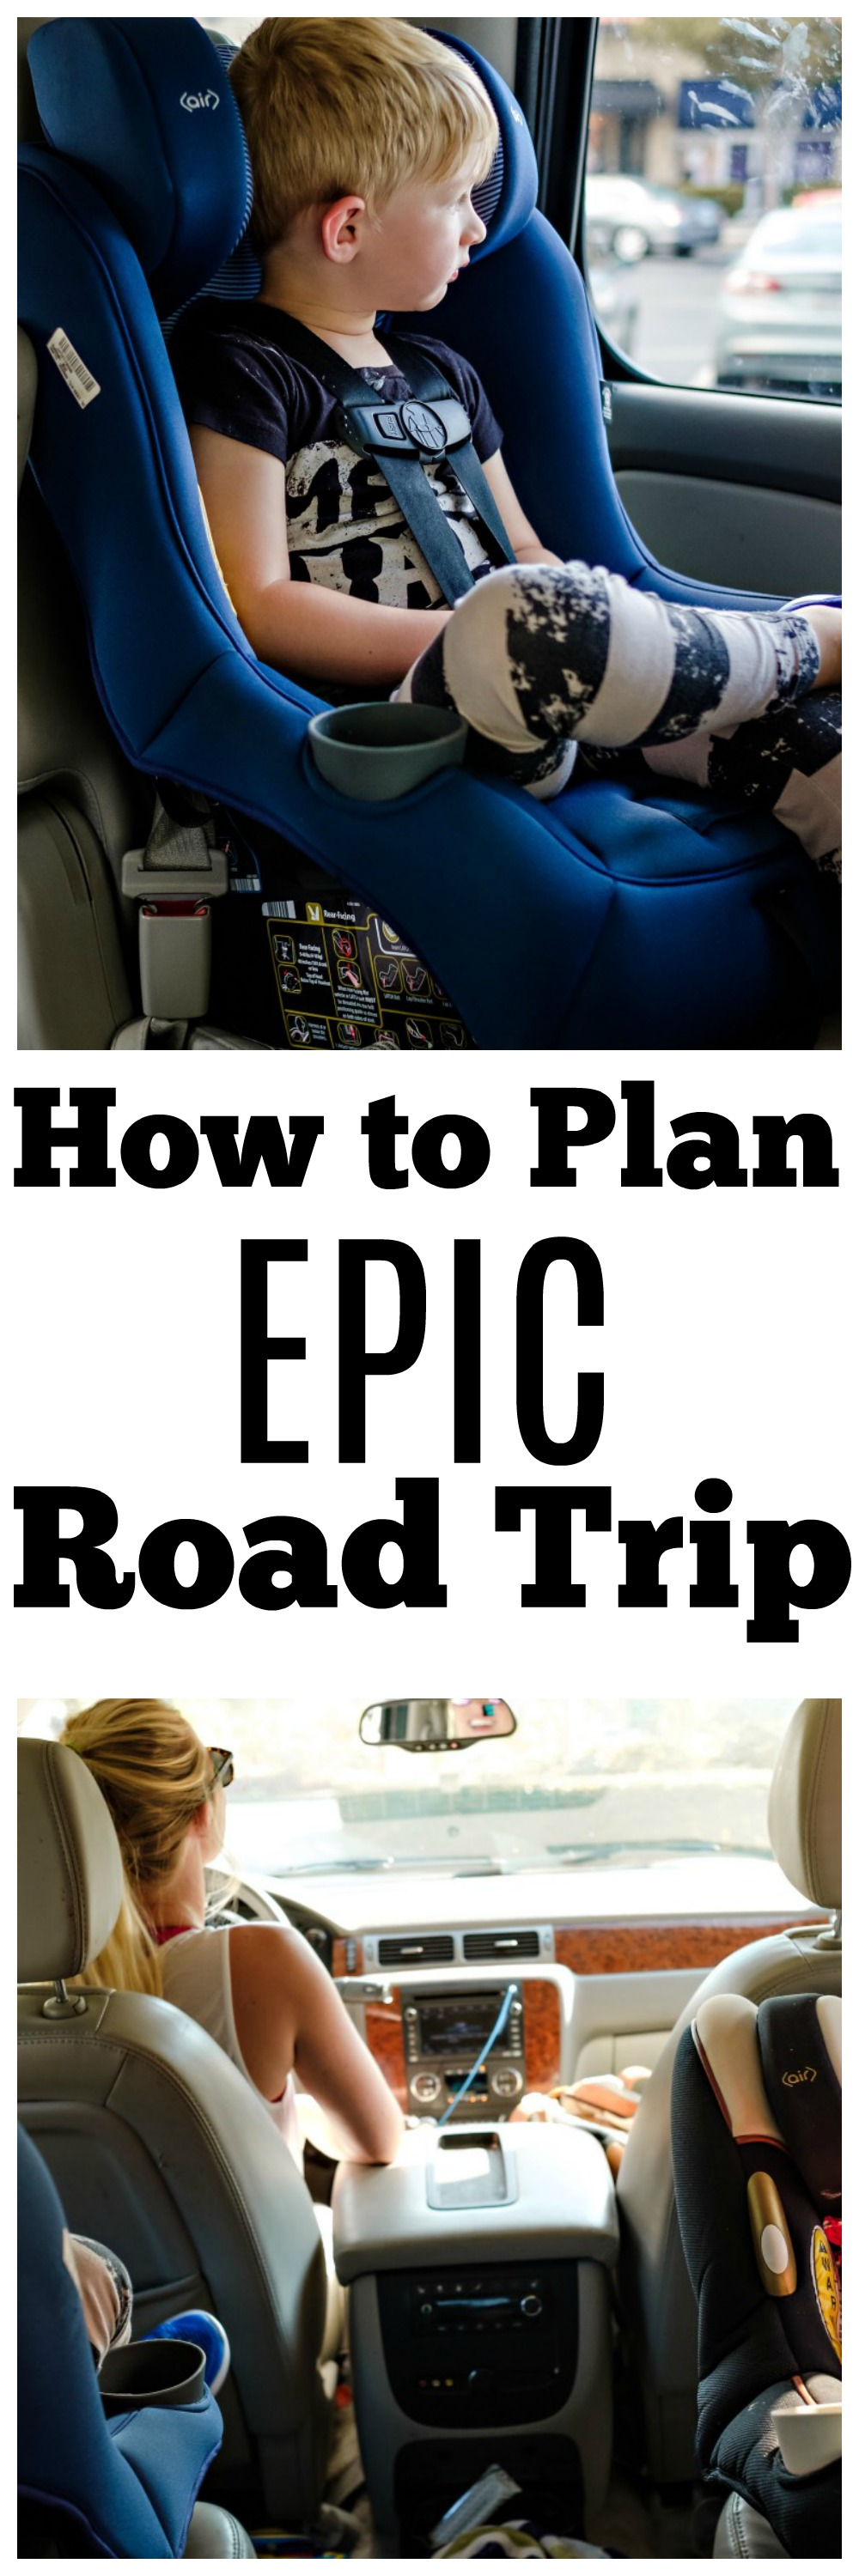 How to Plan a Road Trip with Kids by Atlanta mom blogger Happily Hughes